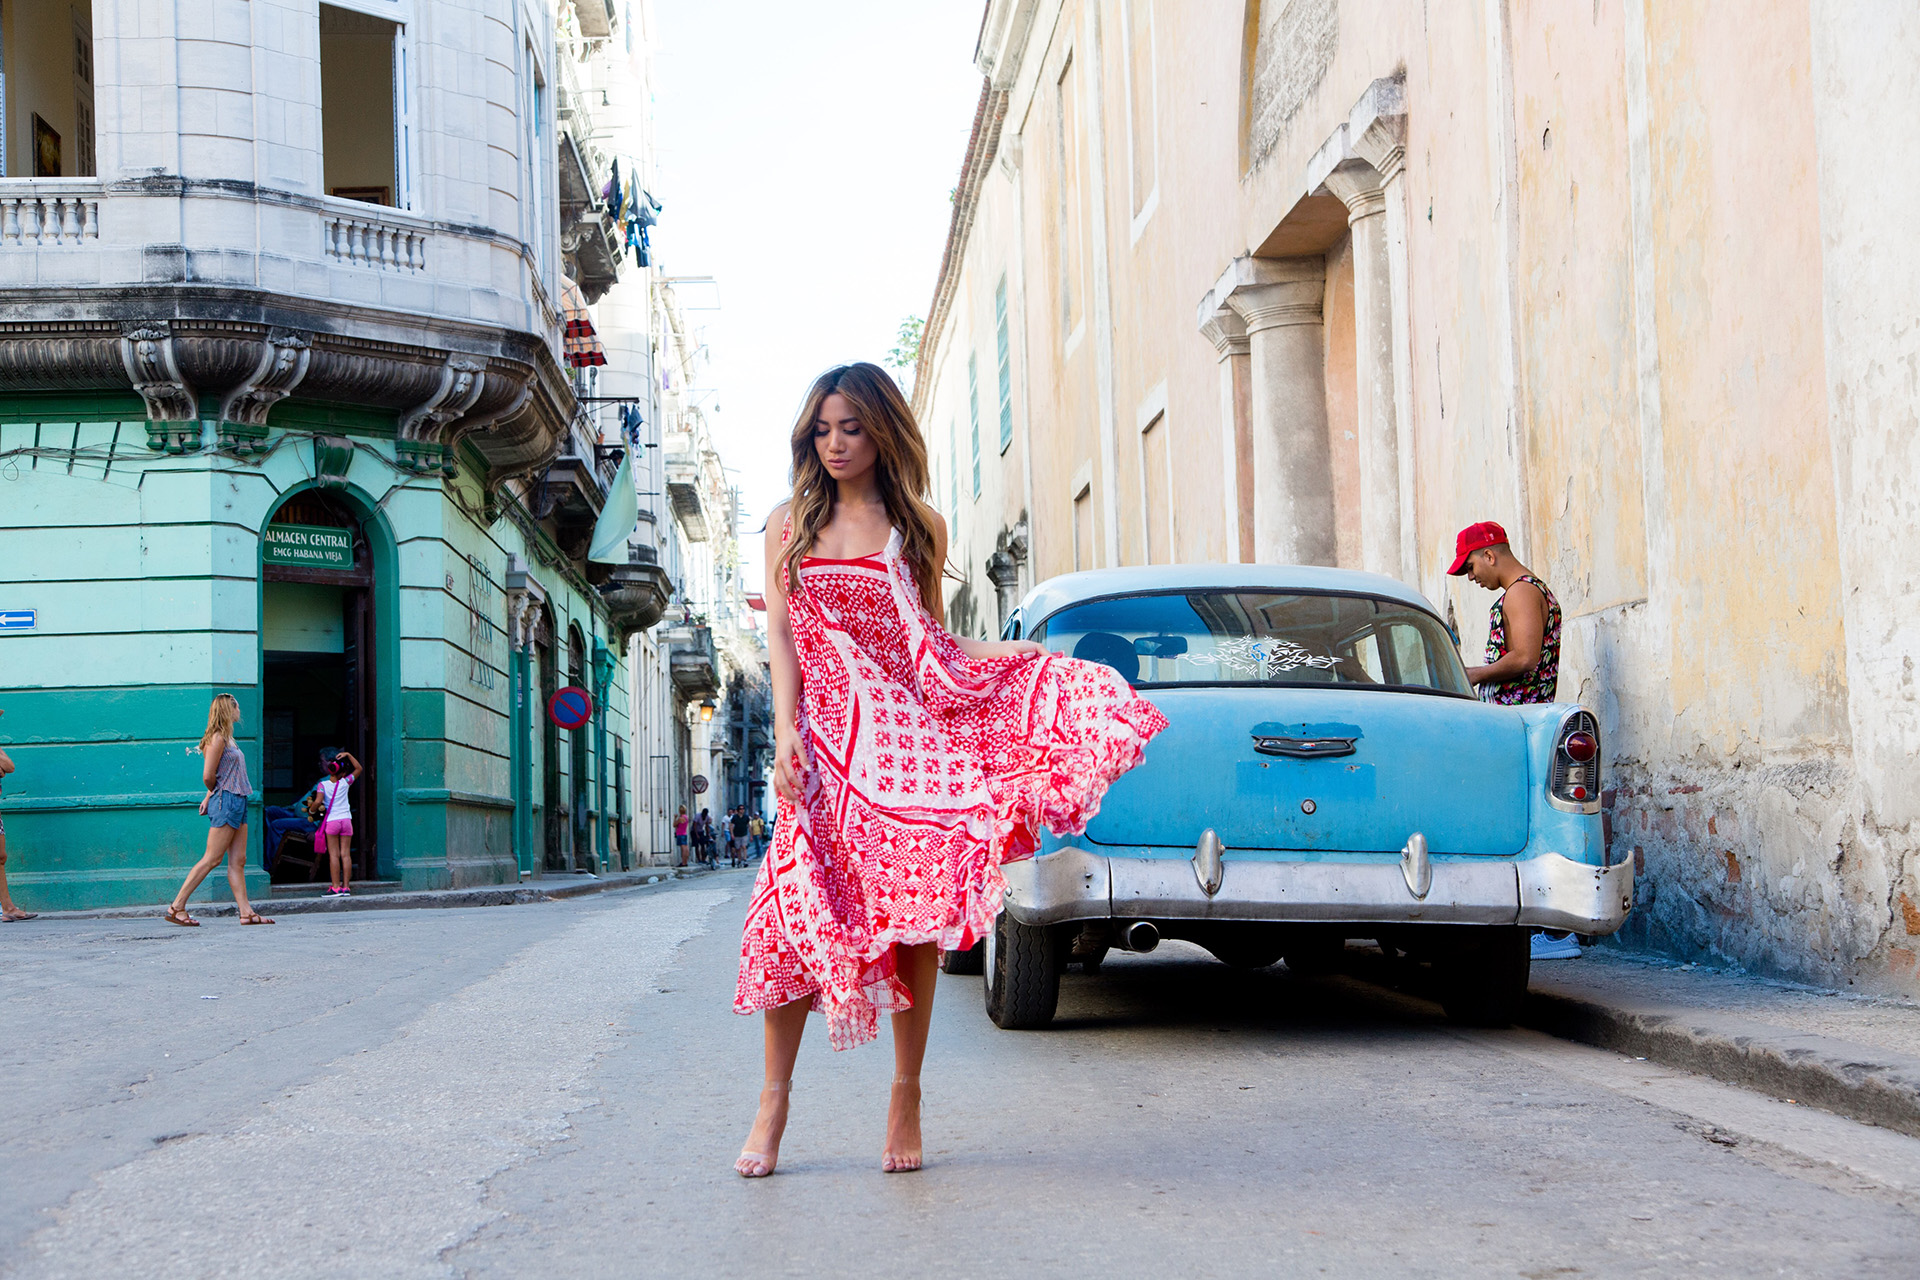 FendiResort17 x Jessi Malay in Fendi in Havana Cuba